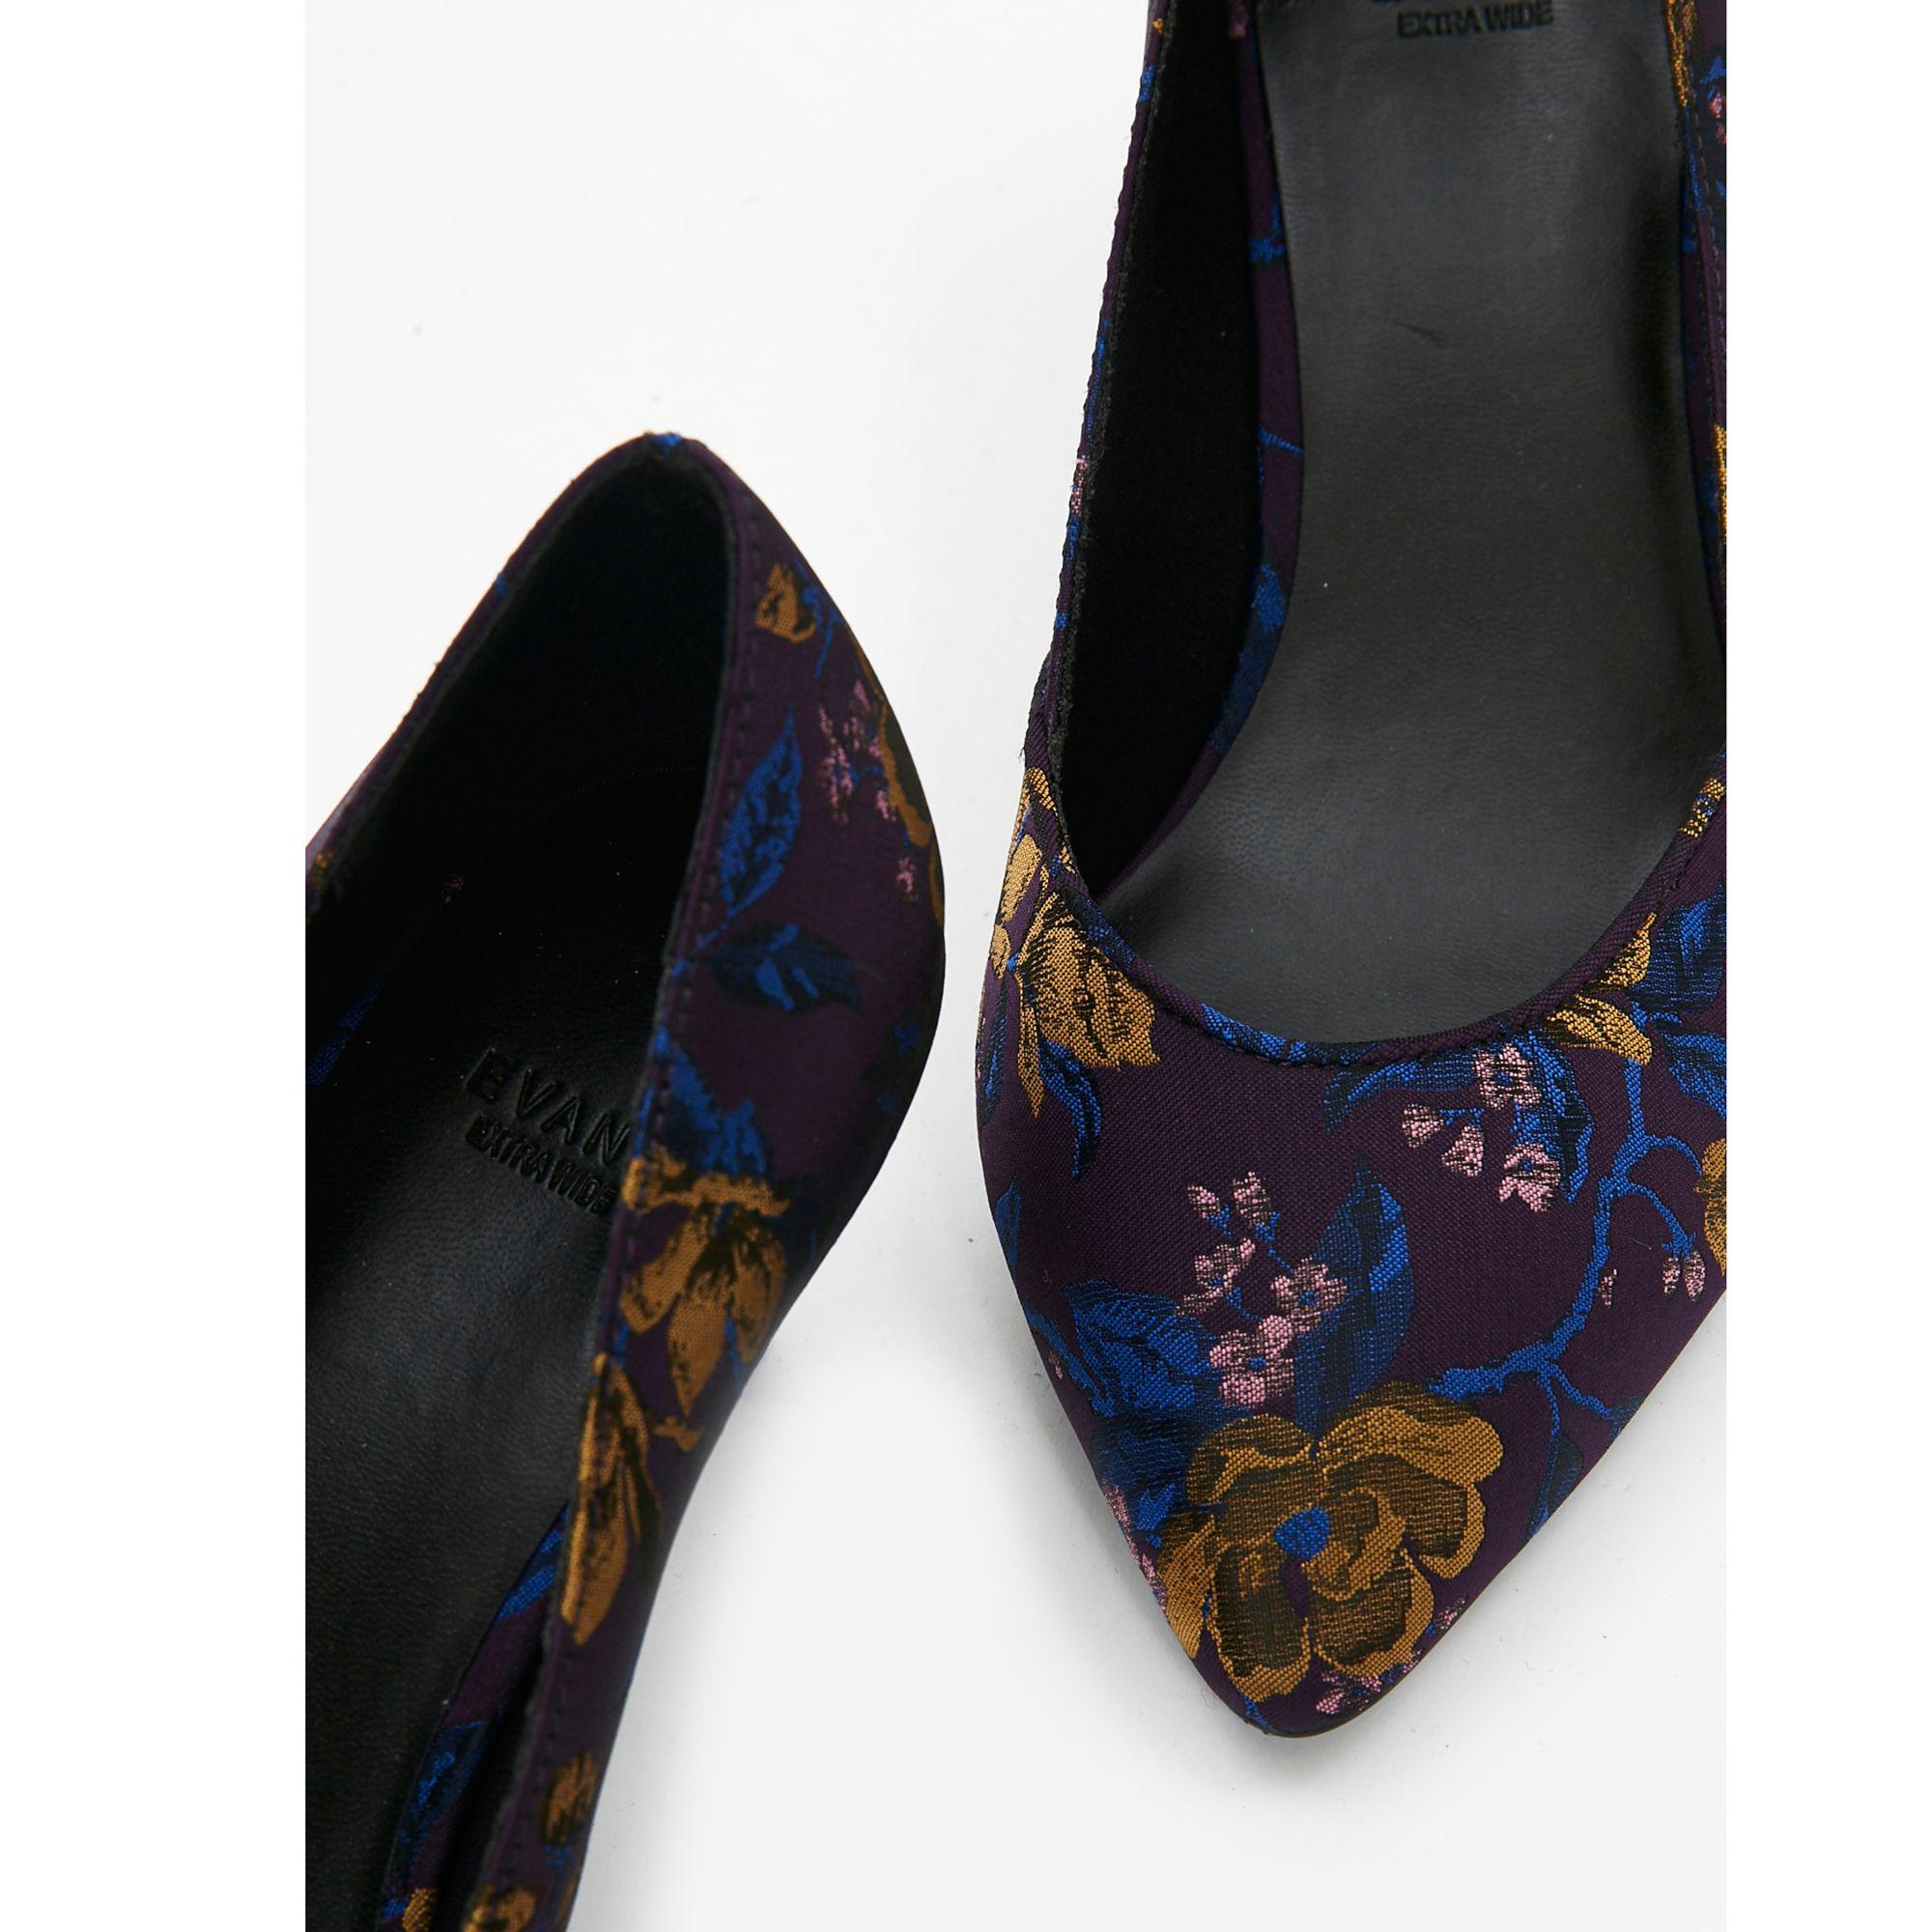 ca632656c29 Evans Extra Wide Fit Purple Jacquard Kitten Heel Court Shoes in ...